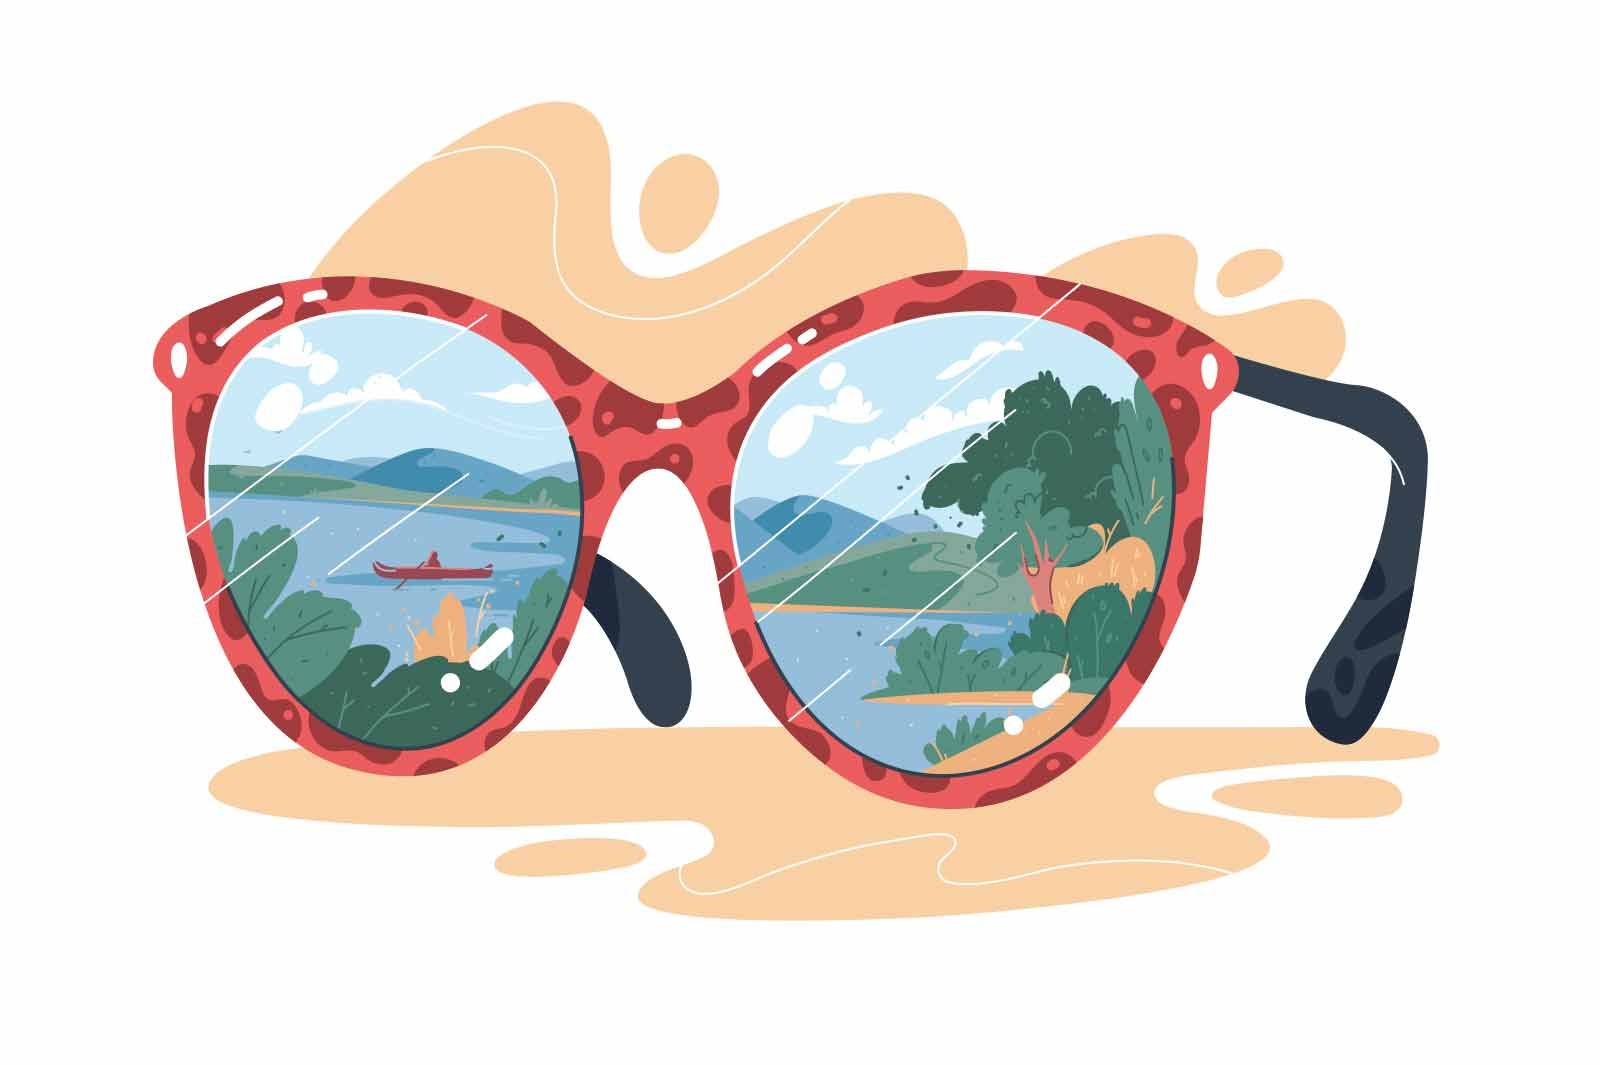 Sun glasses accessory with view vector illustration. Glasses with leopard print, nature landscape in reflection flat style. Fashion concept